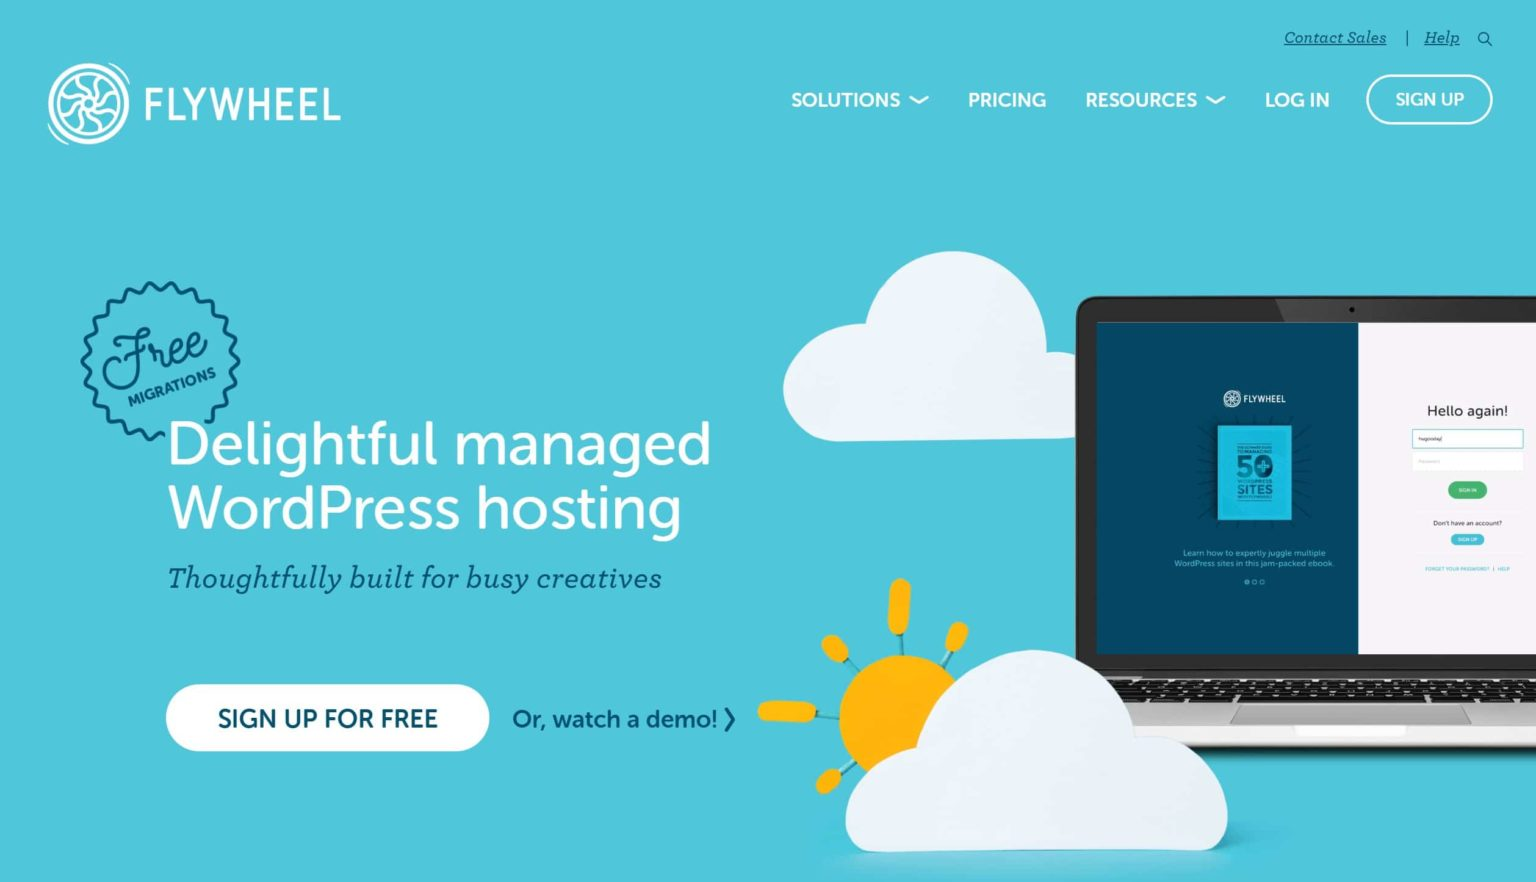 flywheel is one of the fastest managed hosting for WordPress sites